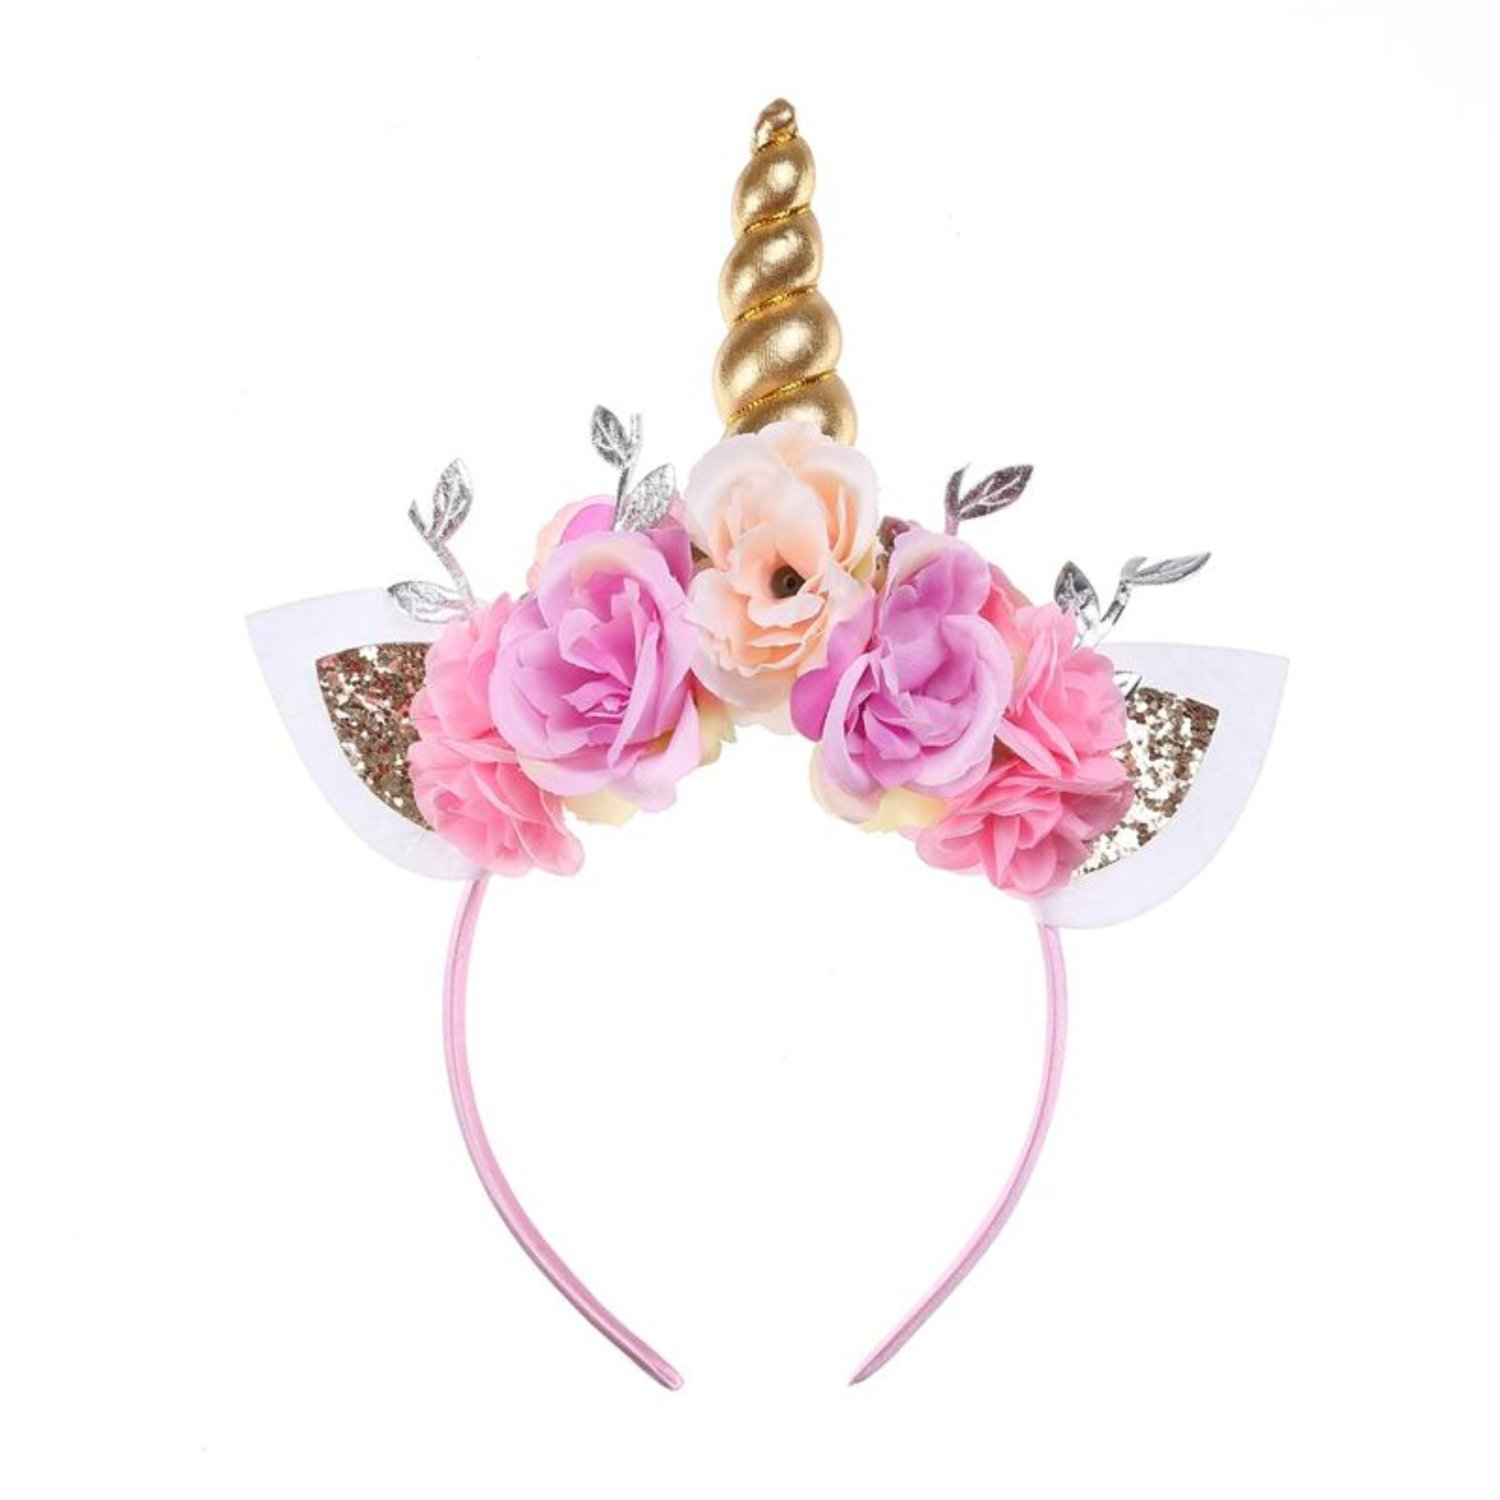 Unicorn Headband-Gold Unicorn Headband-Unicorn Headband Horn By Party Now